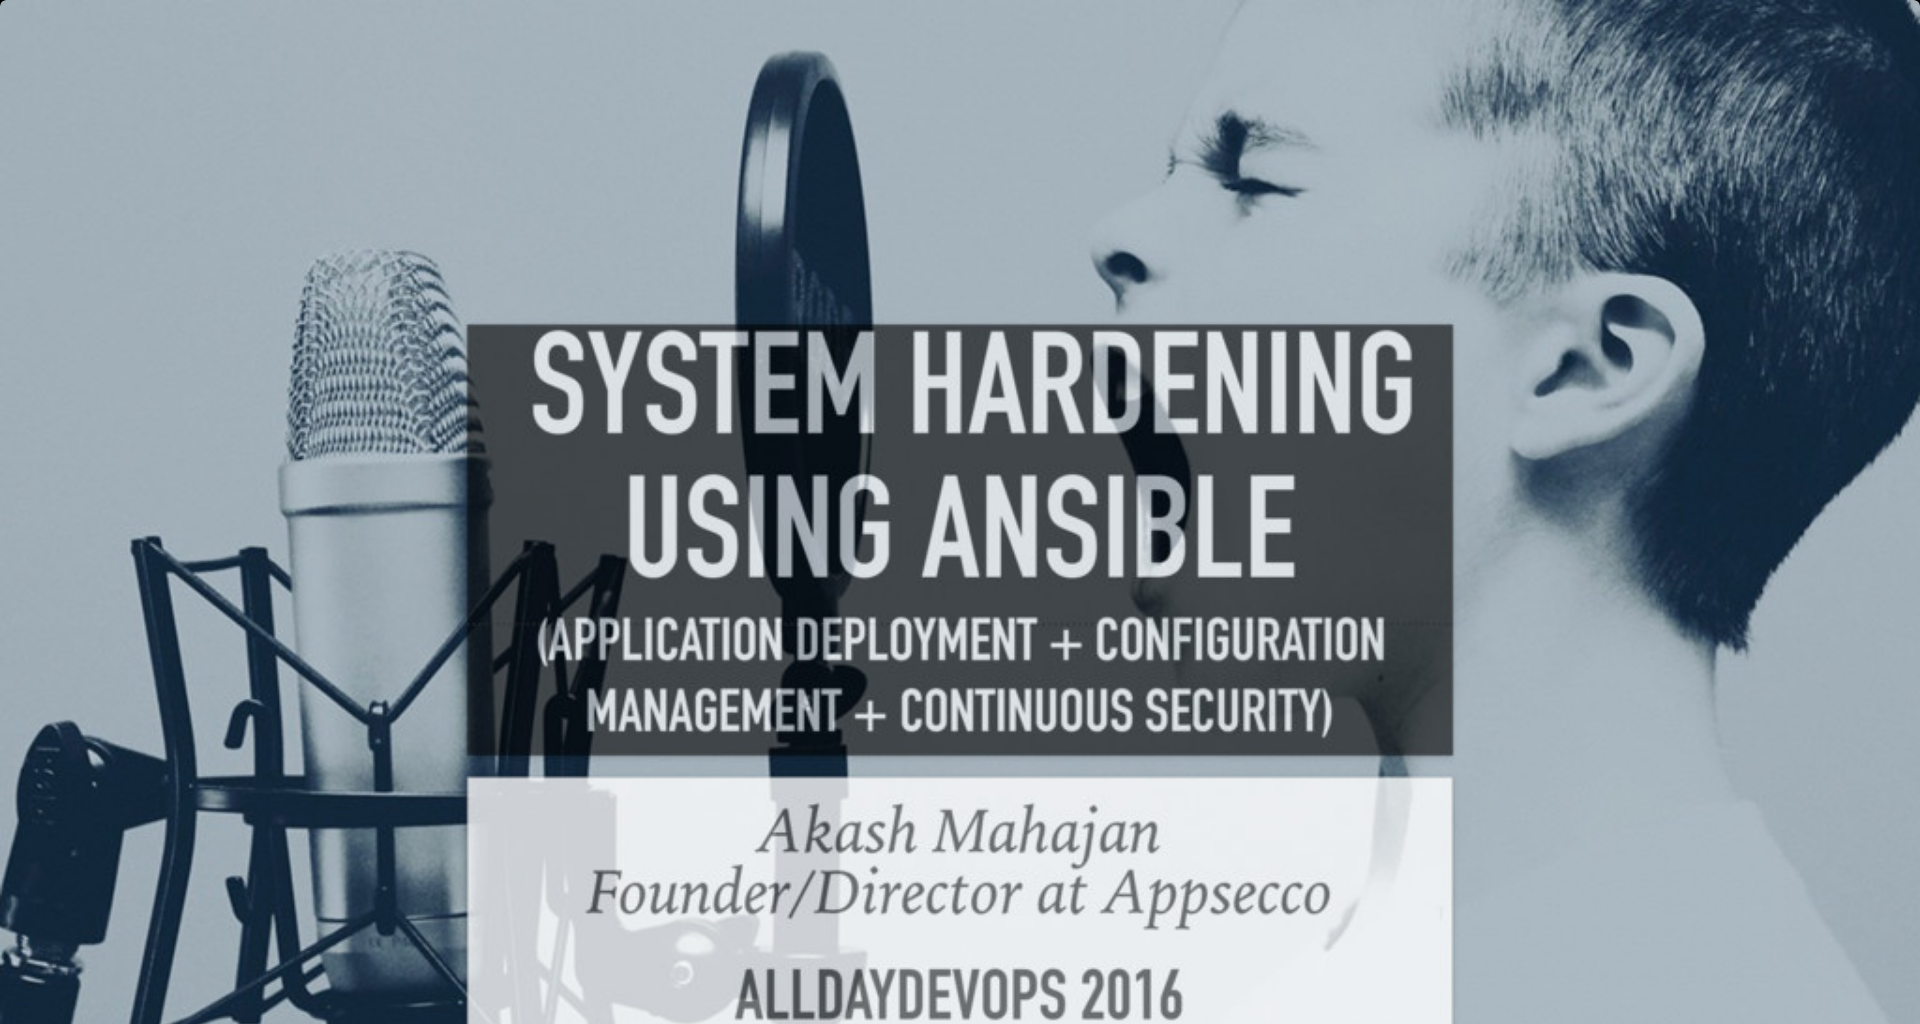 System Hardening Using Ansible